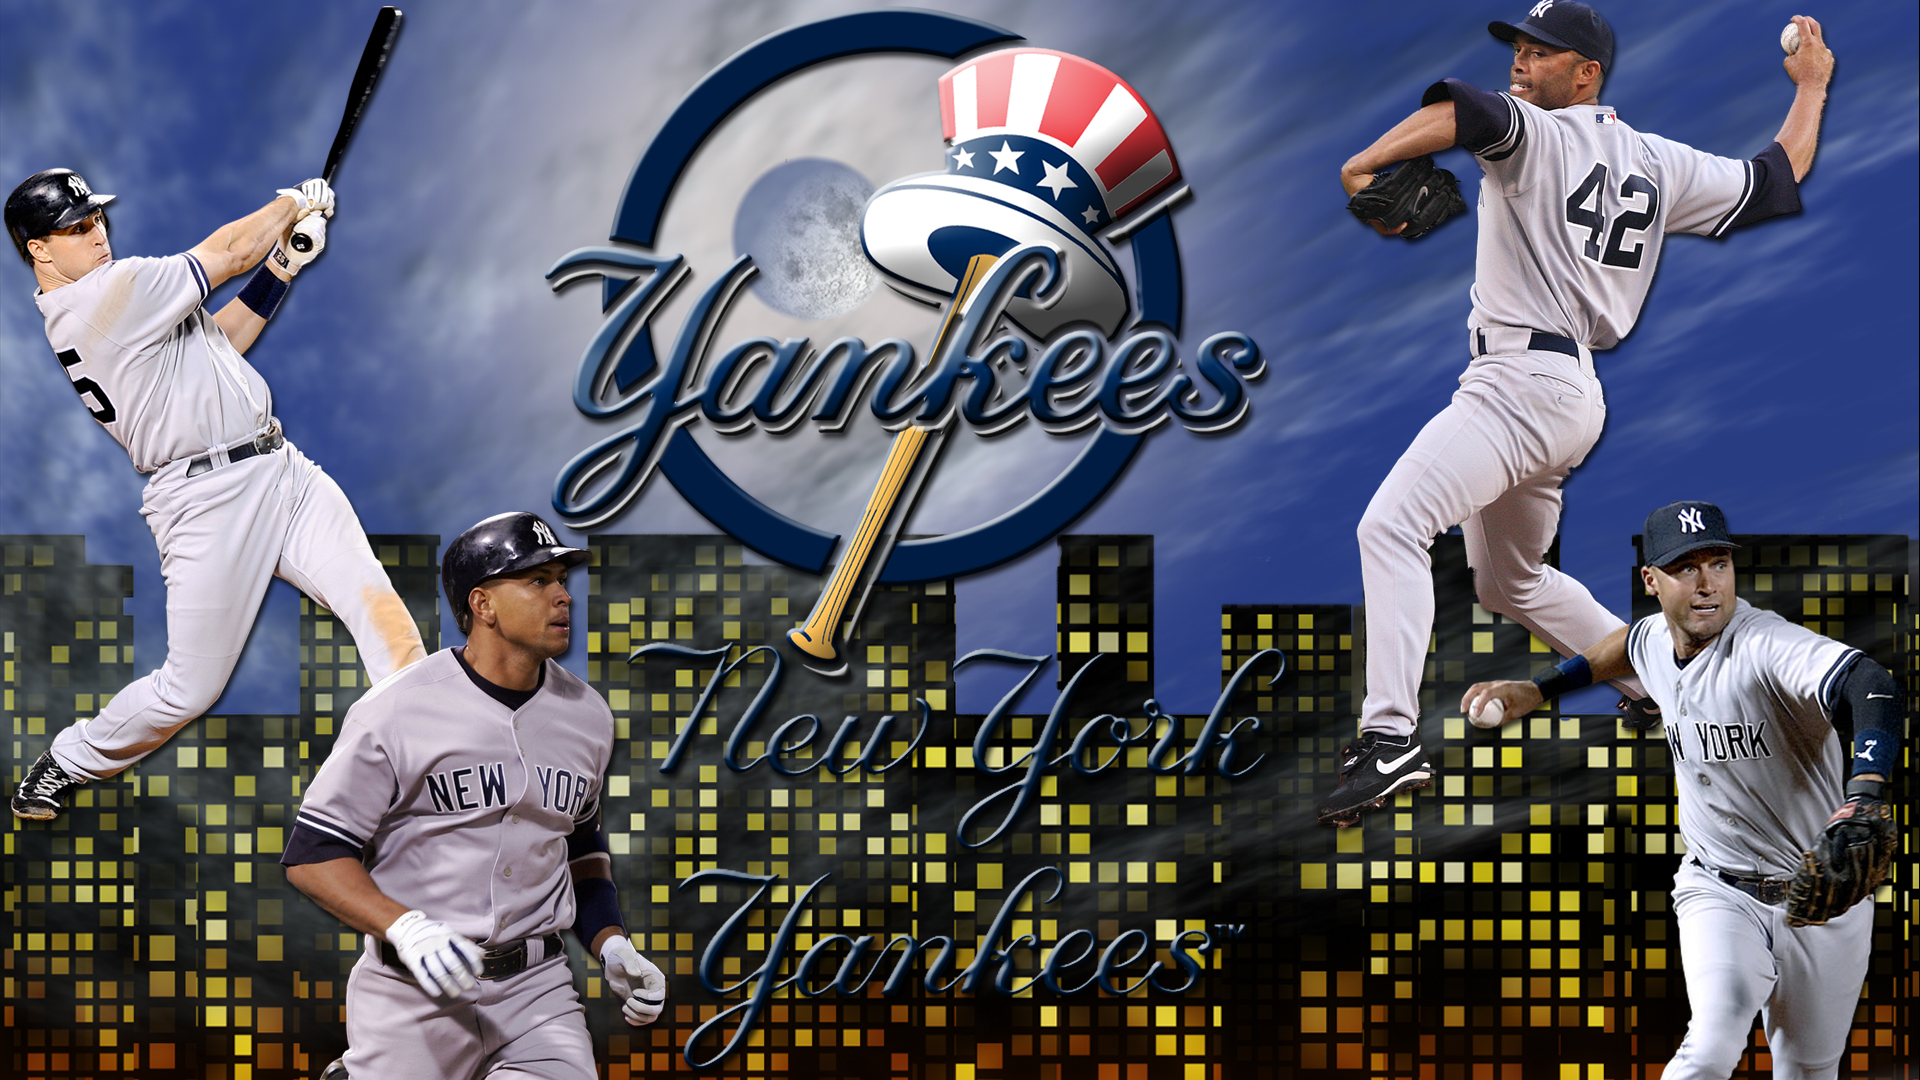 Wallpapers By Wicked Shadows New York Yankees Night Sky Wallpaper 1920x1080